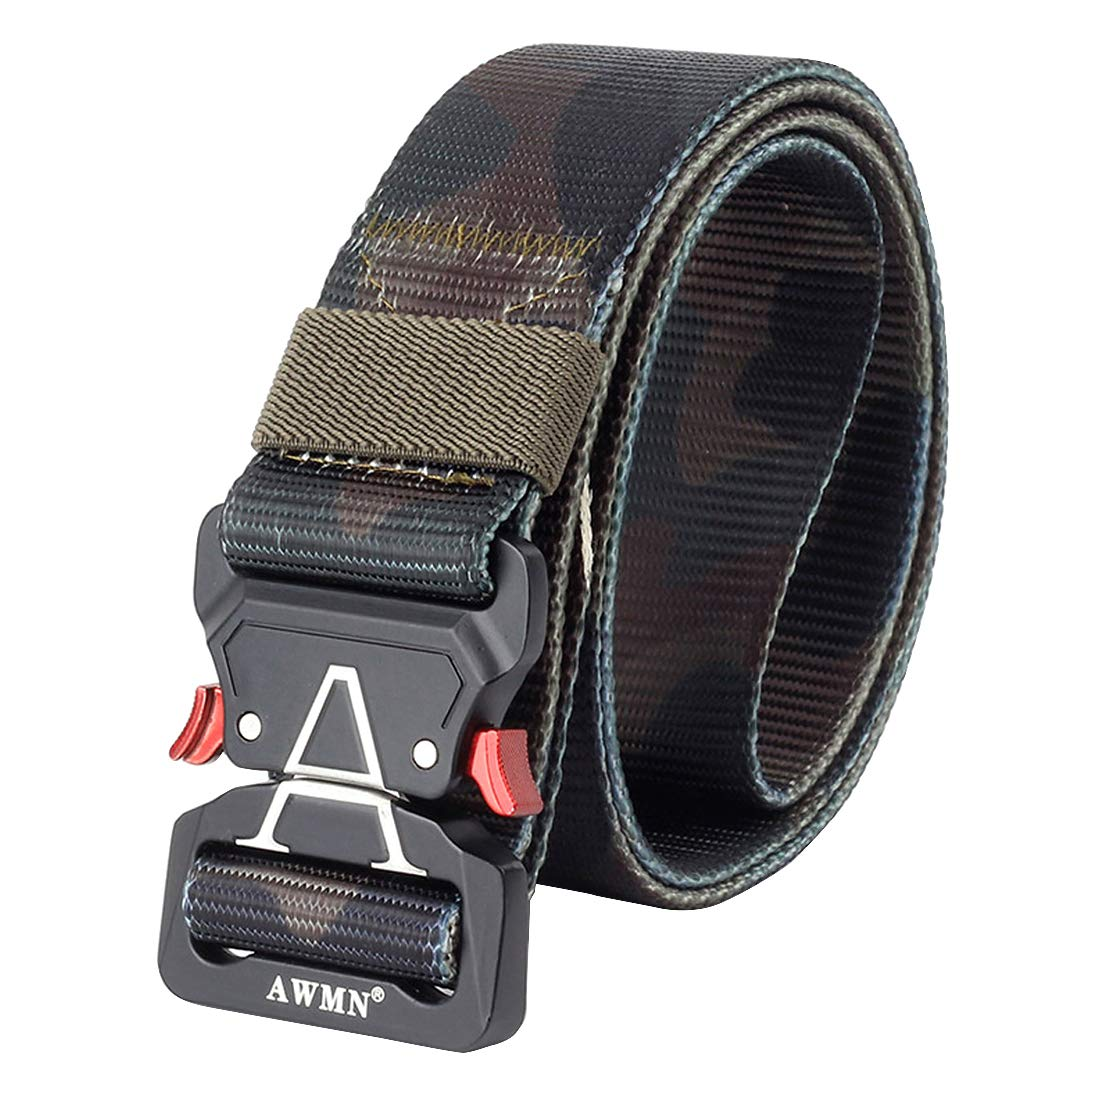 YIANO 1.5 Mens Tactical Nylon Webbing Belt with New Quick Release Buckle Classic Camo